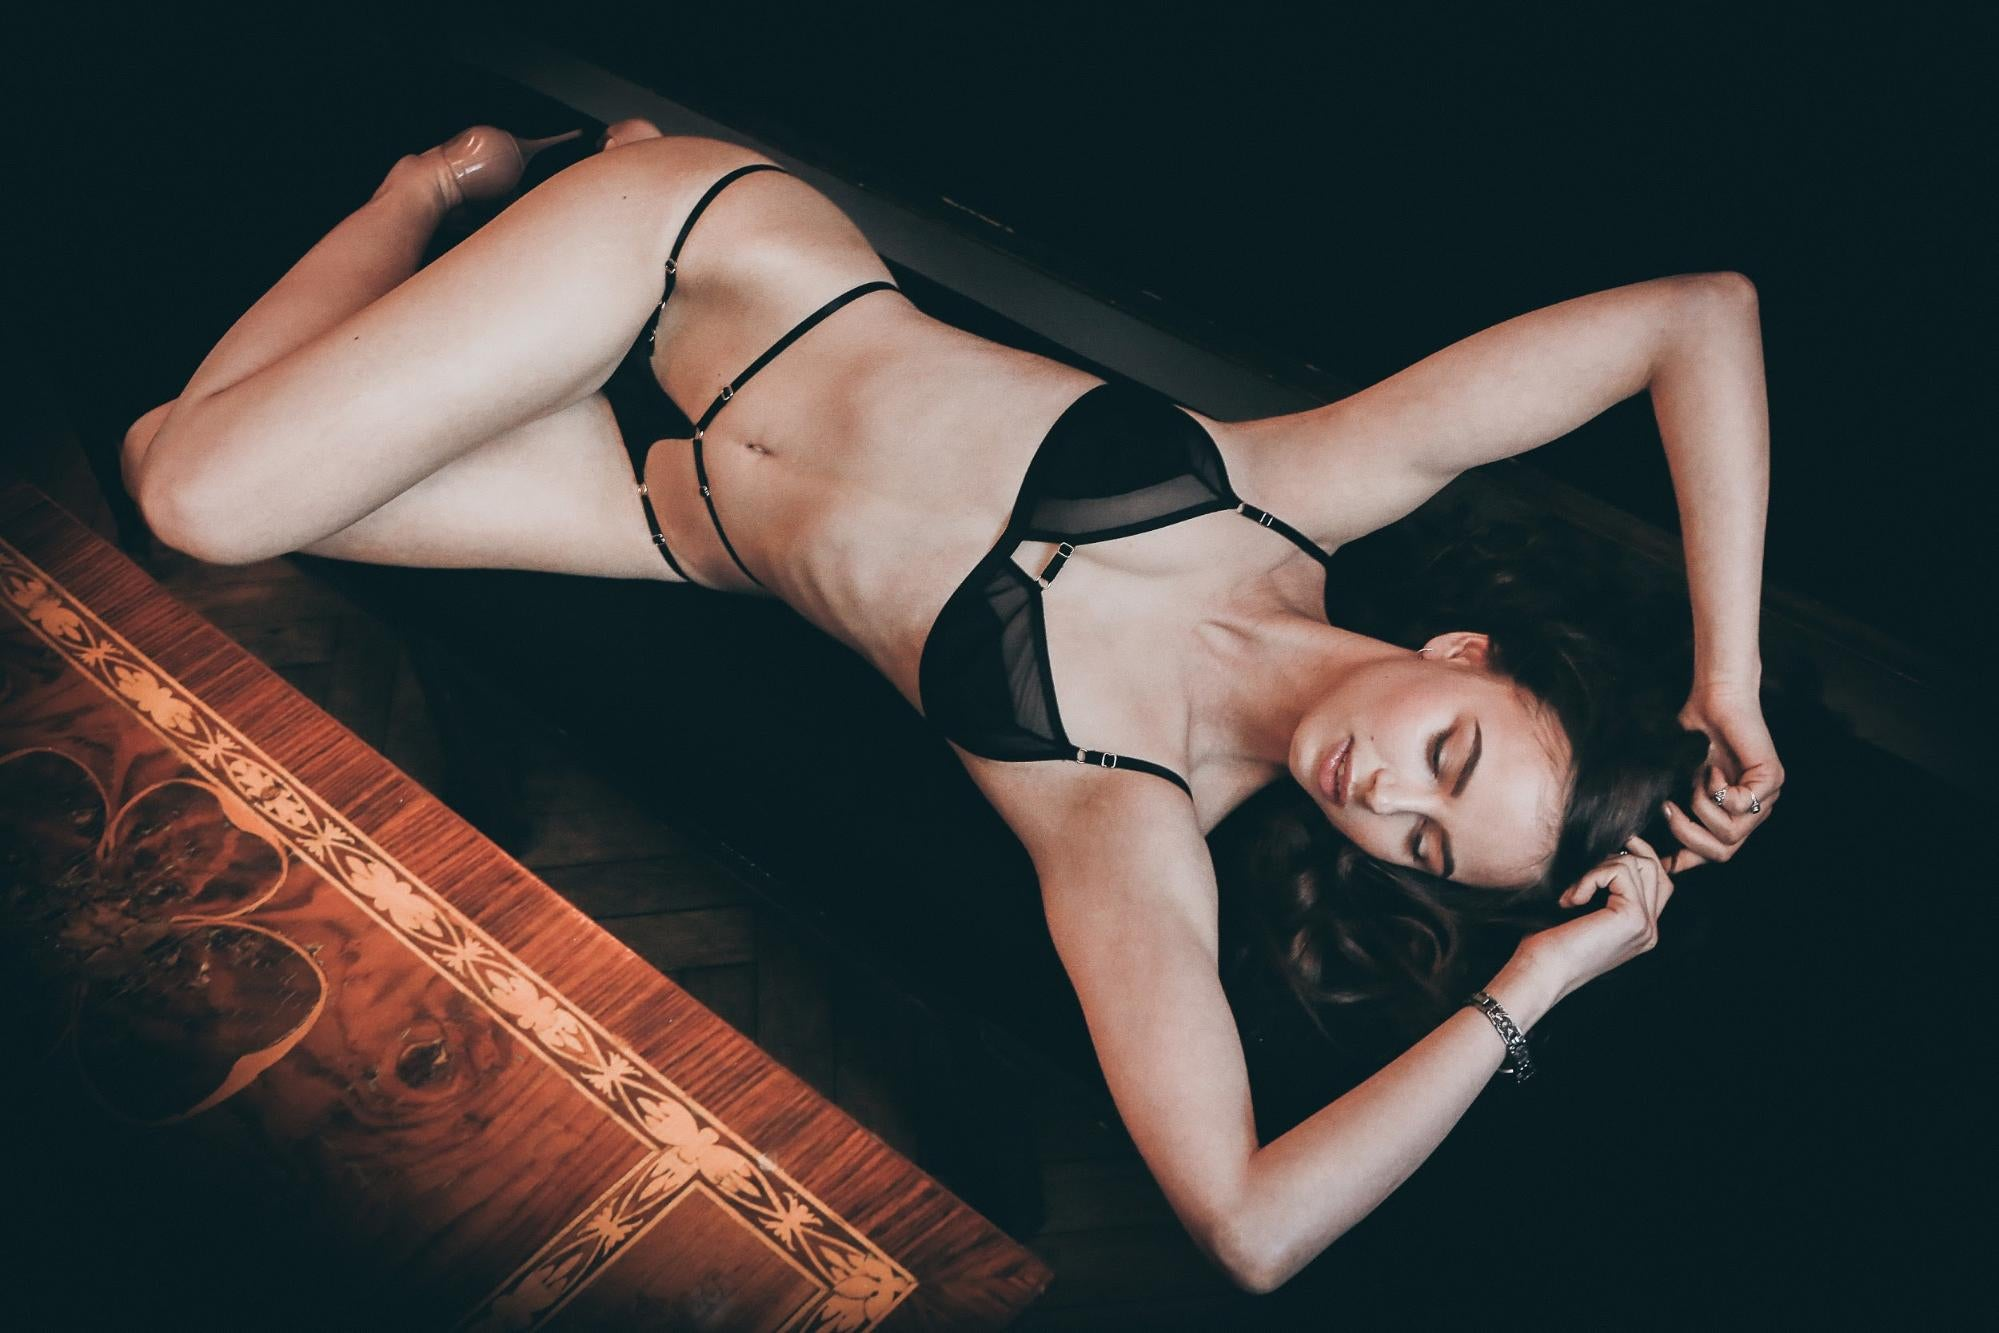 How to Take Boudoir Photos For Your Man